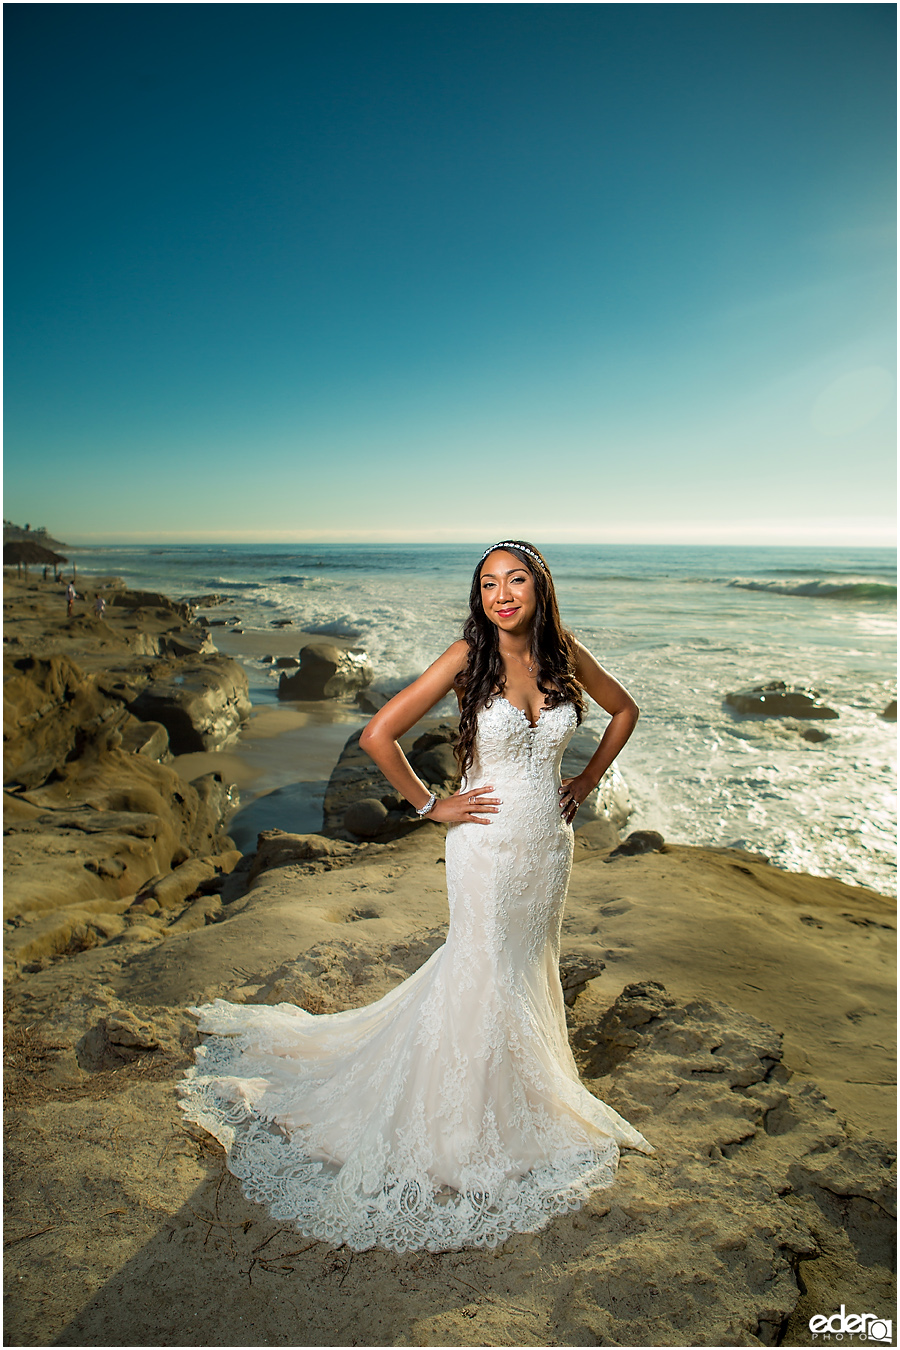 Bridal portrait photography in La Jolla.